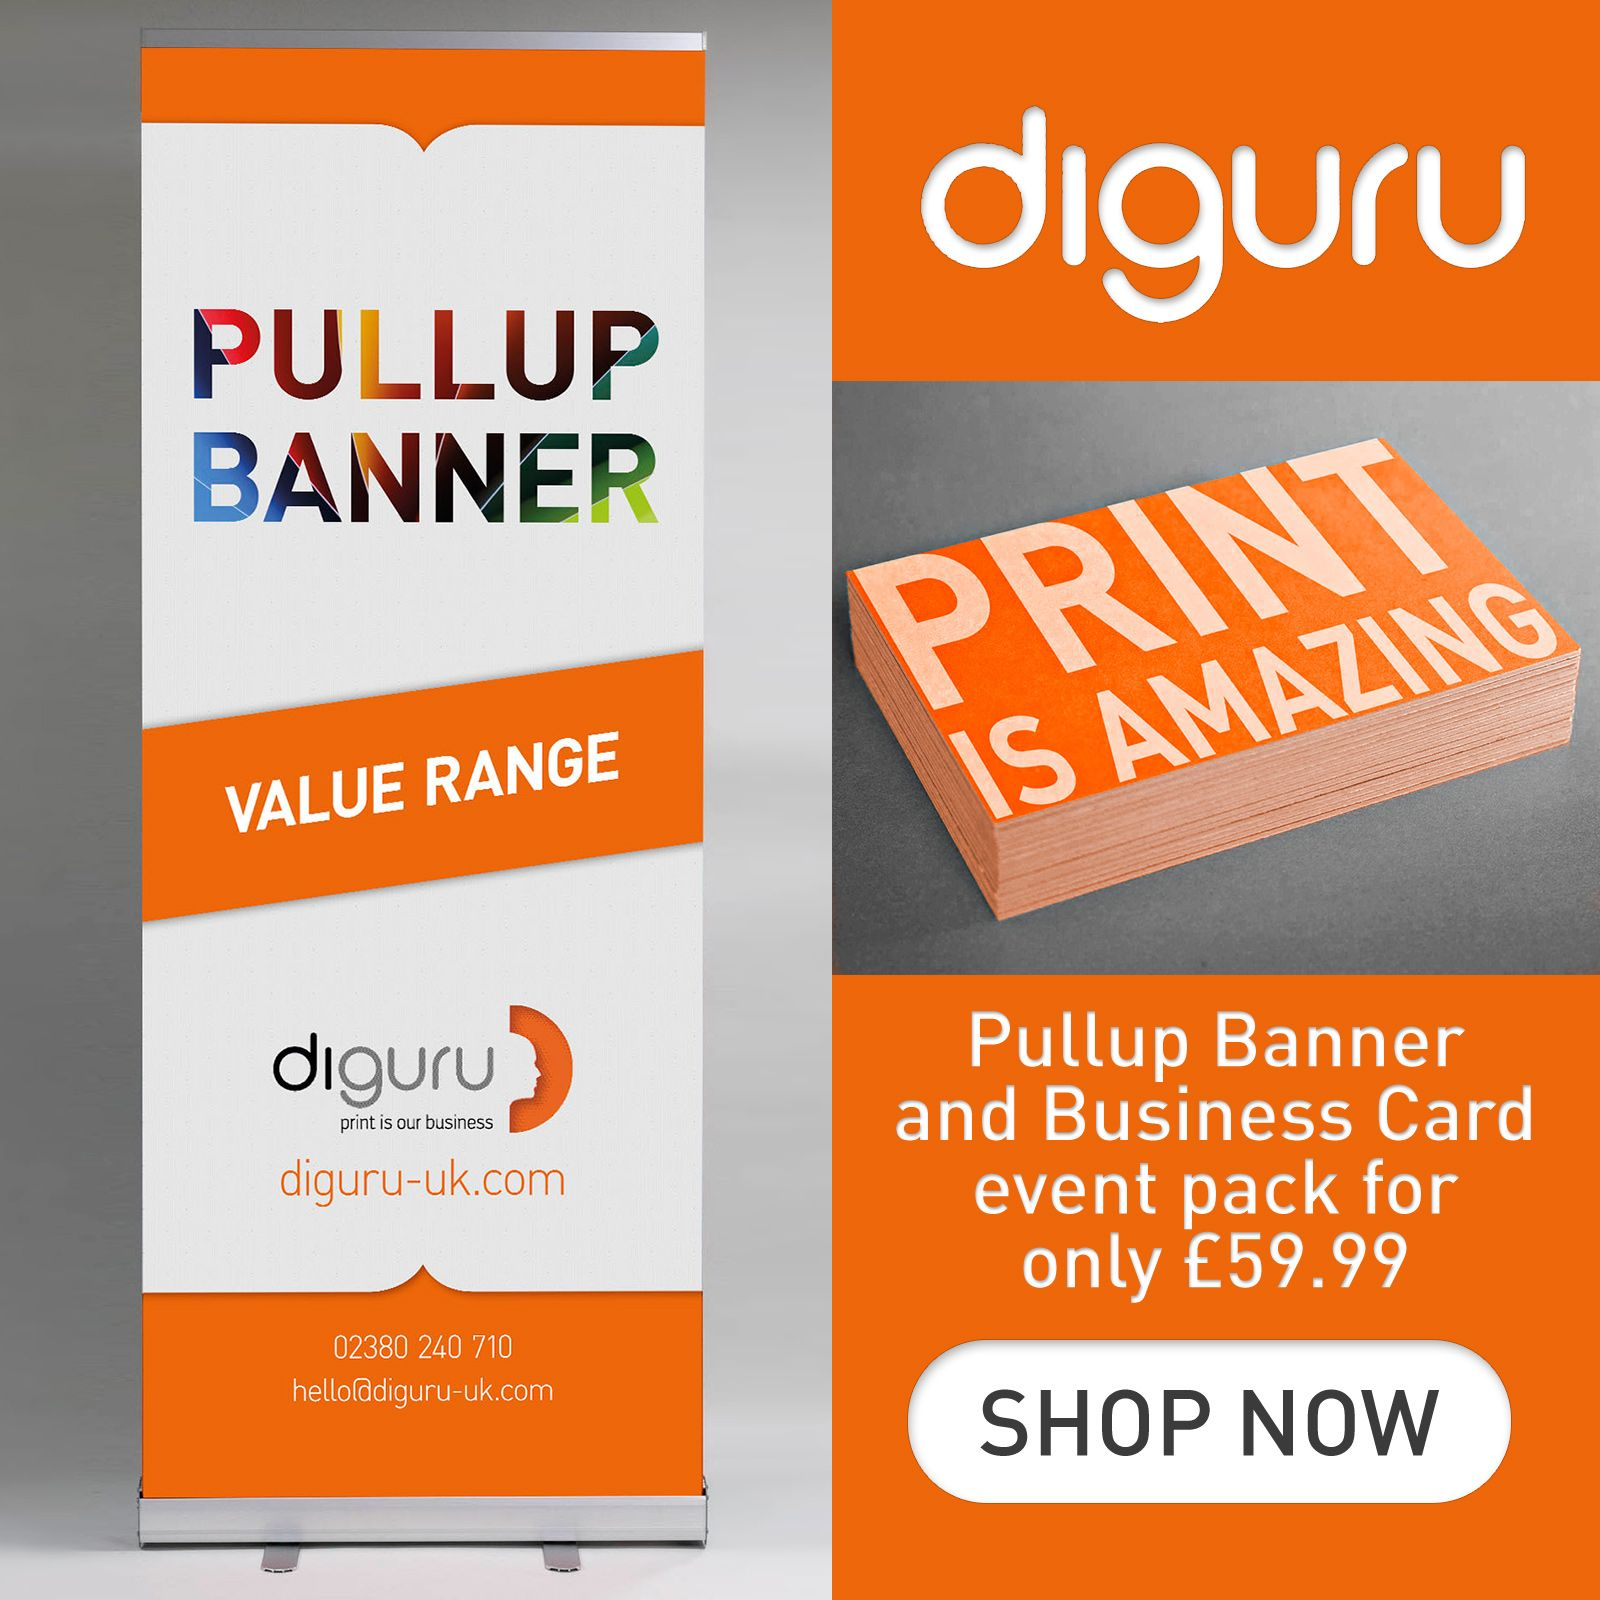 Event Pack Value Pullup Banner And Business Cards Premium Business Cards Business Card Size Cards